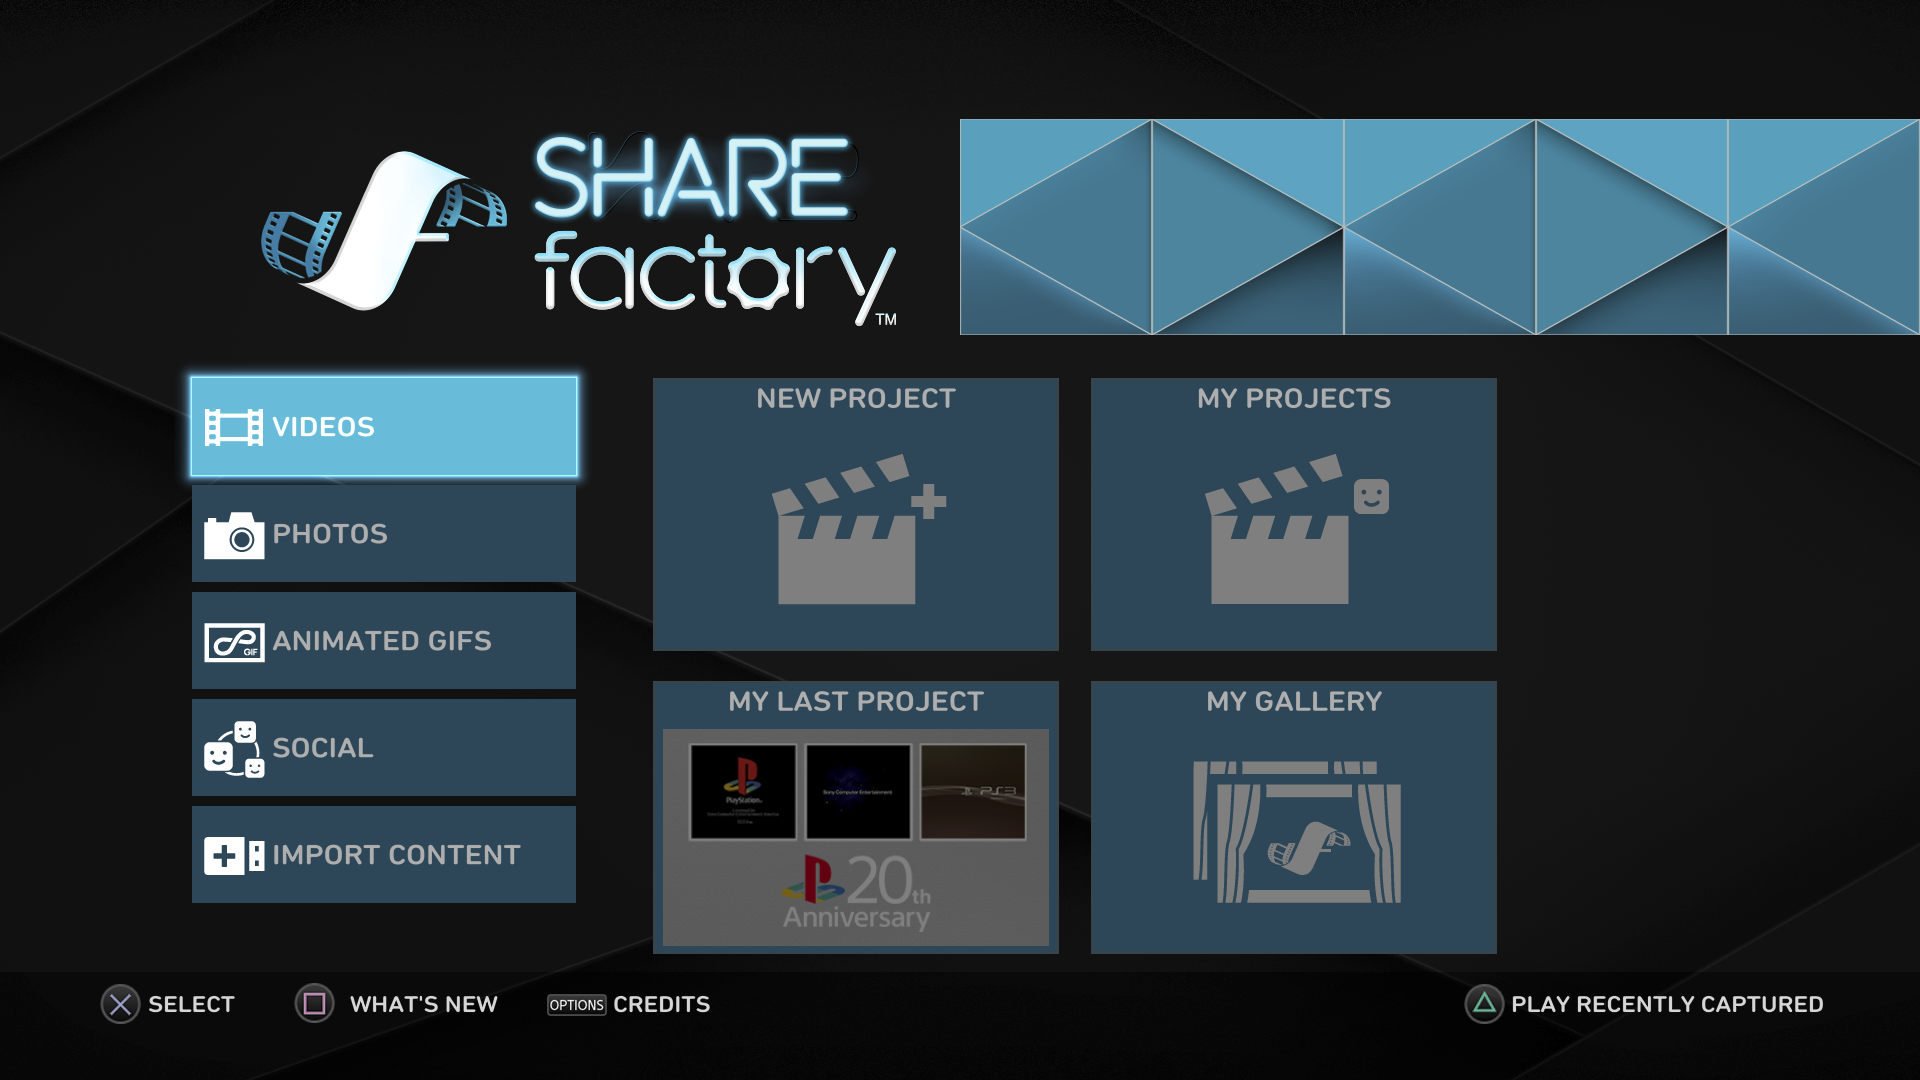 SHAREfactory menu